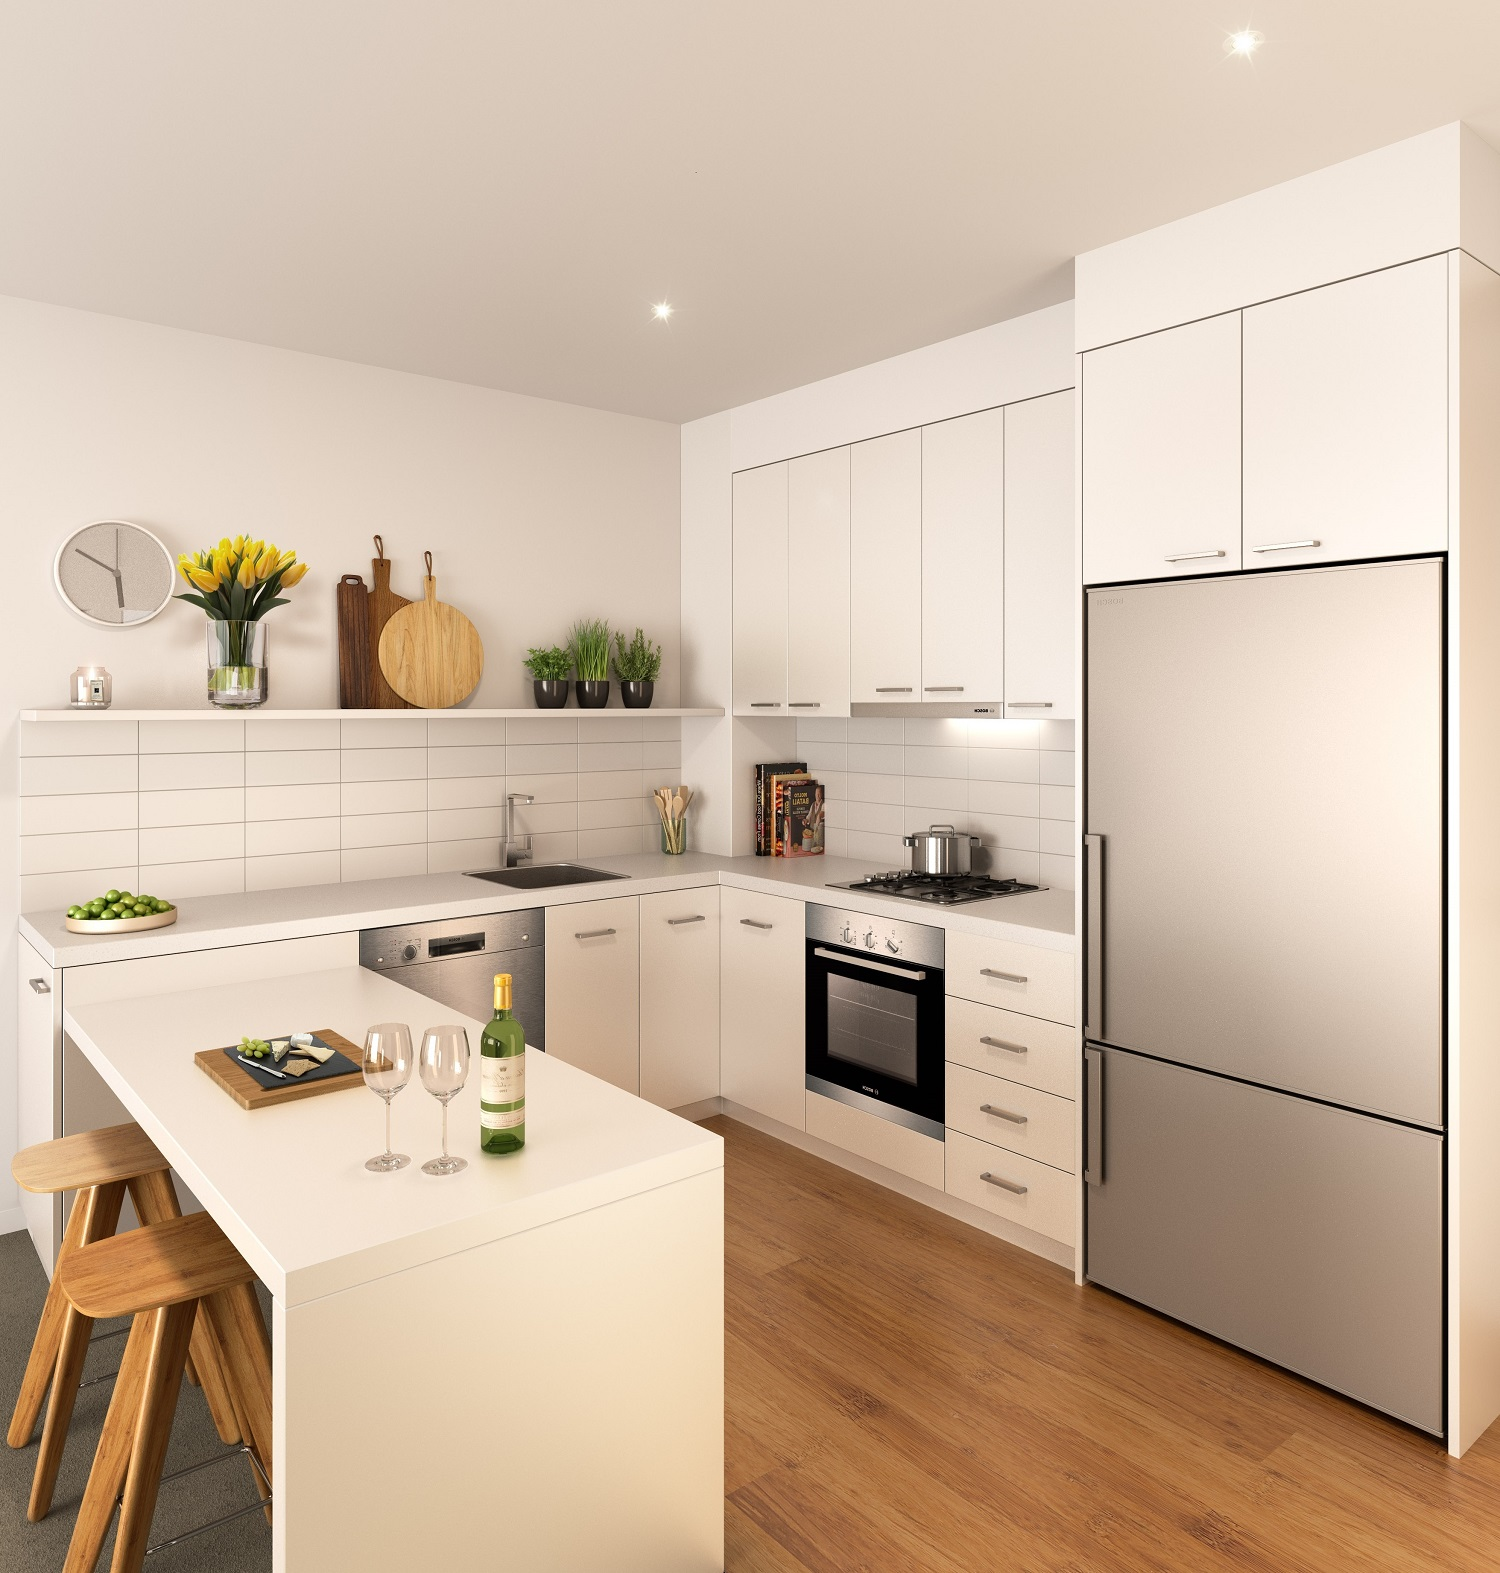 1408-TYB-Kitchen Render-Portrait